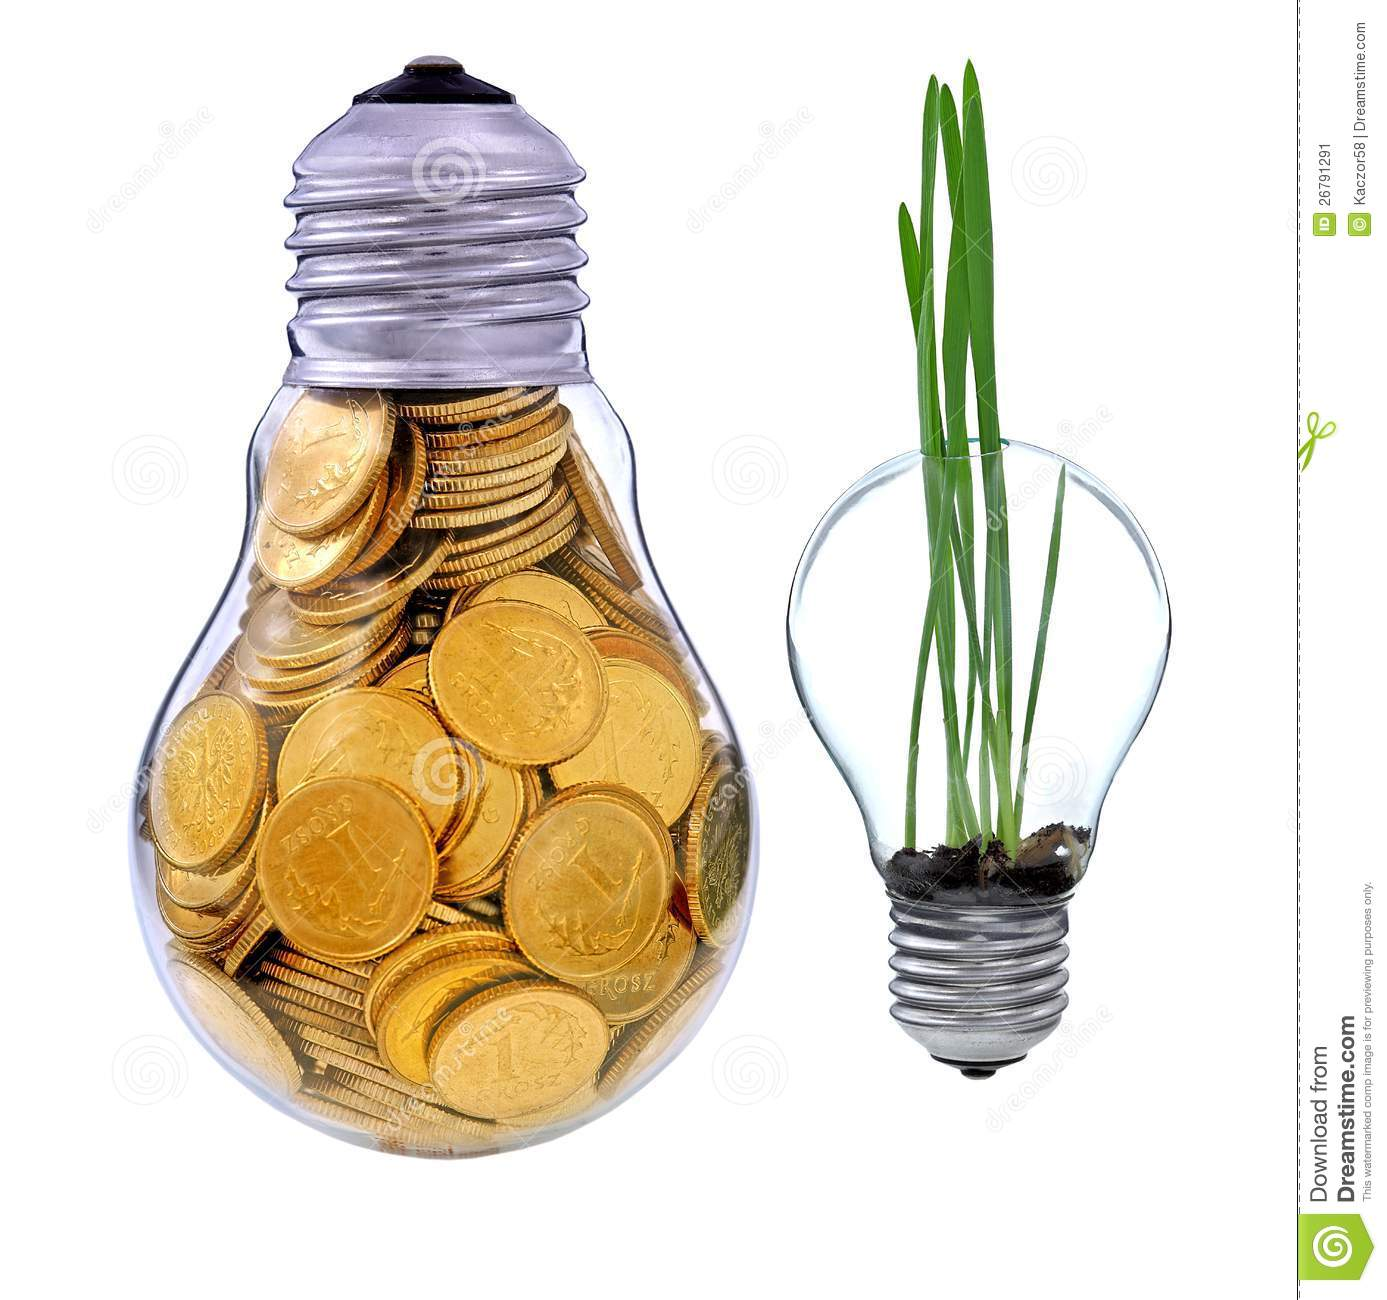 Green Electric Energy From Renewable Sources Stock Image